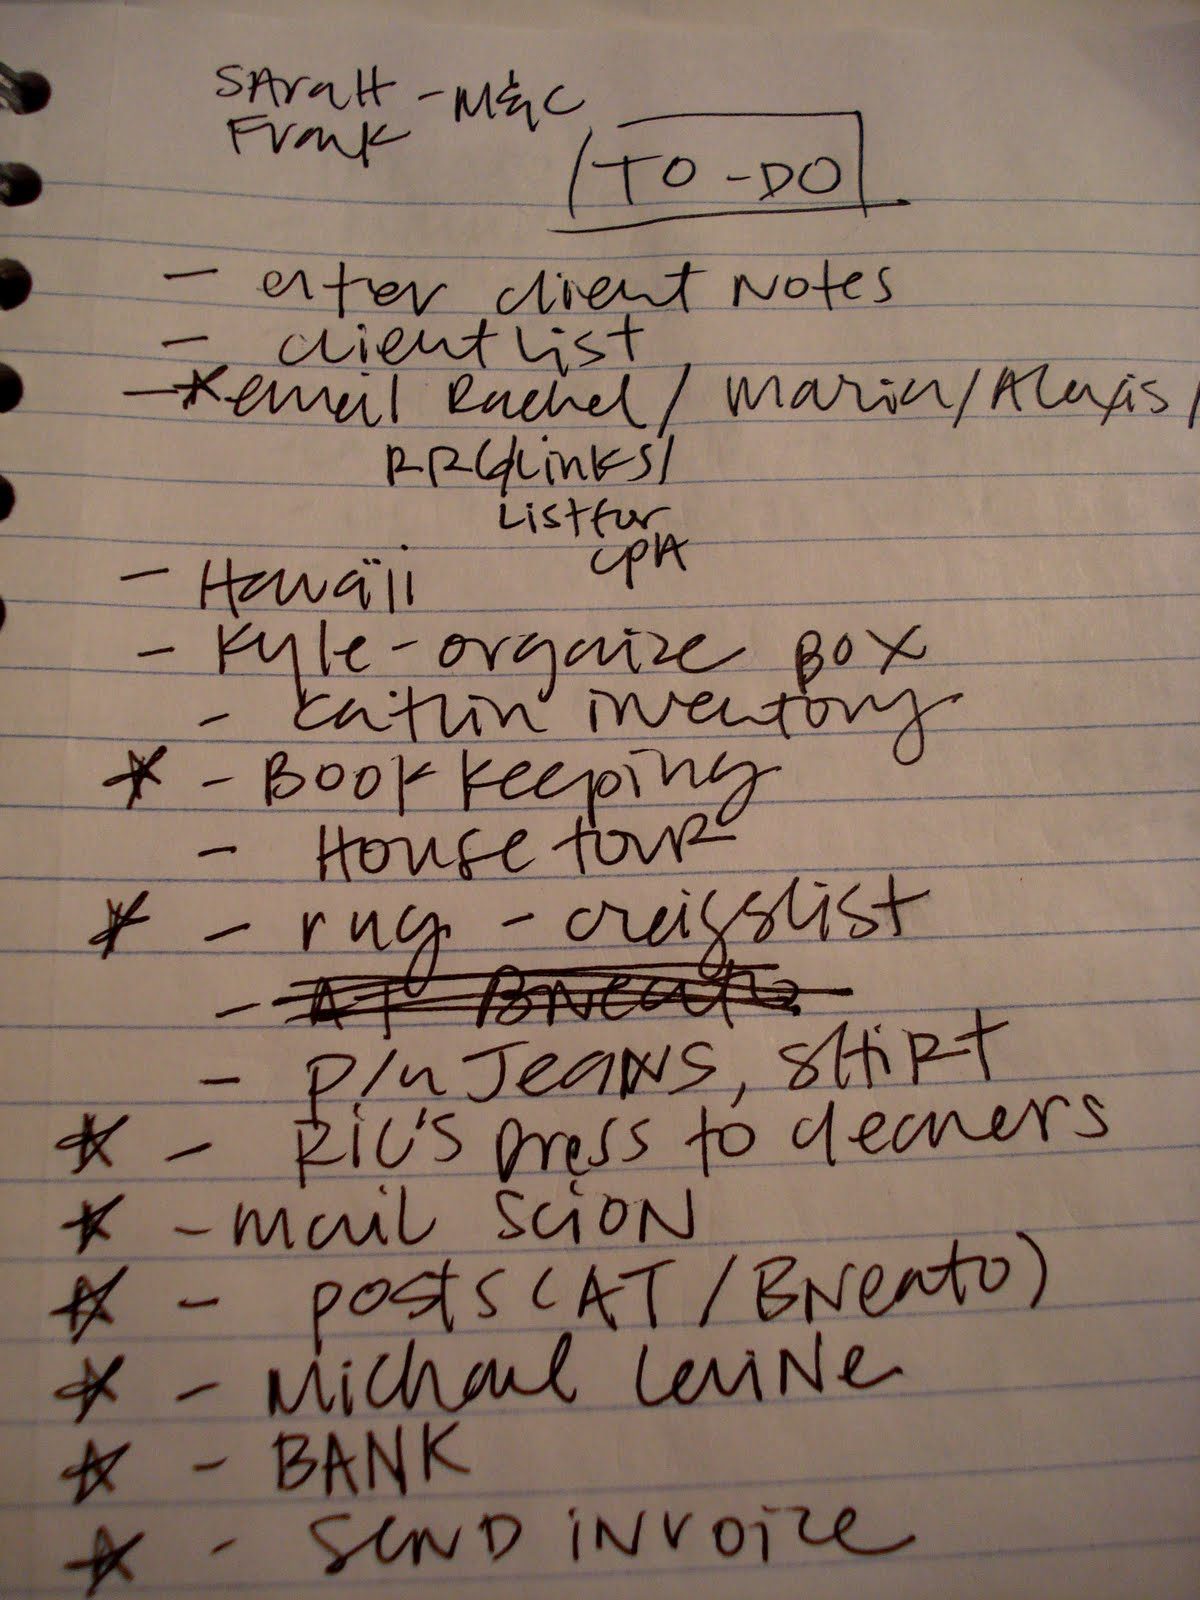 A classic list. Not my own.